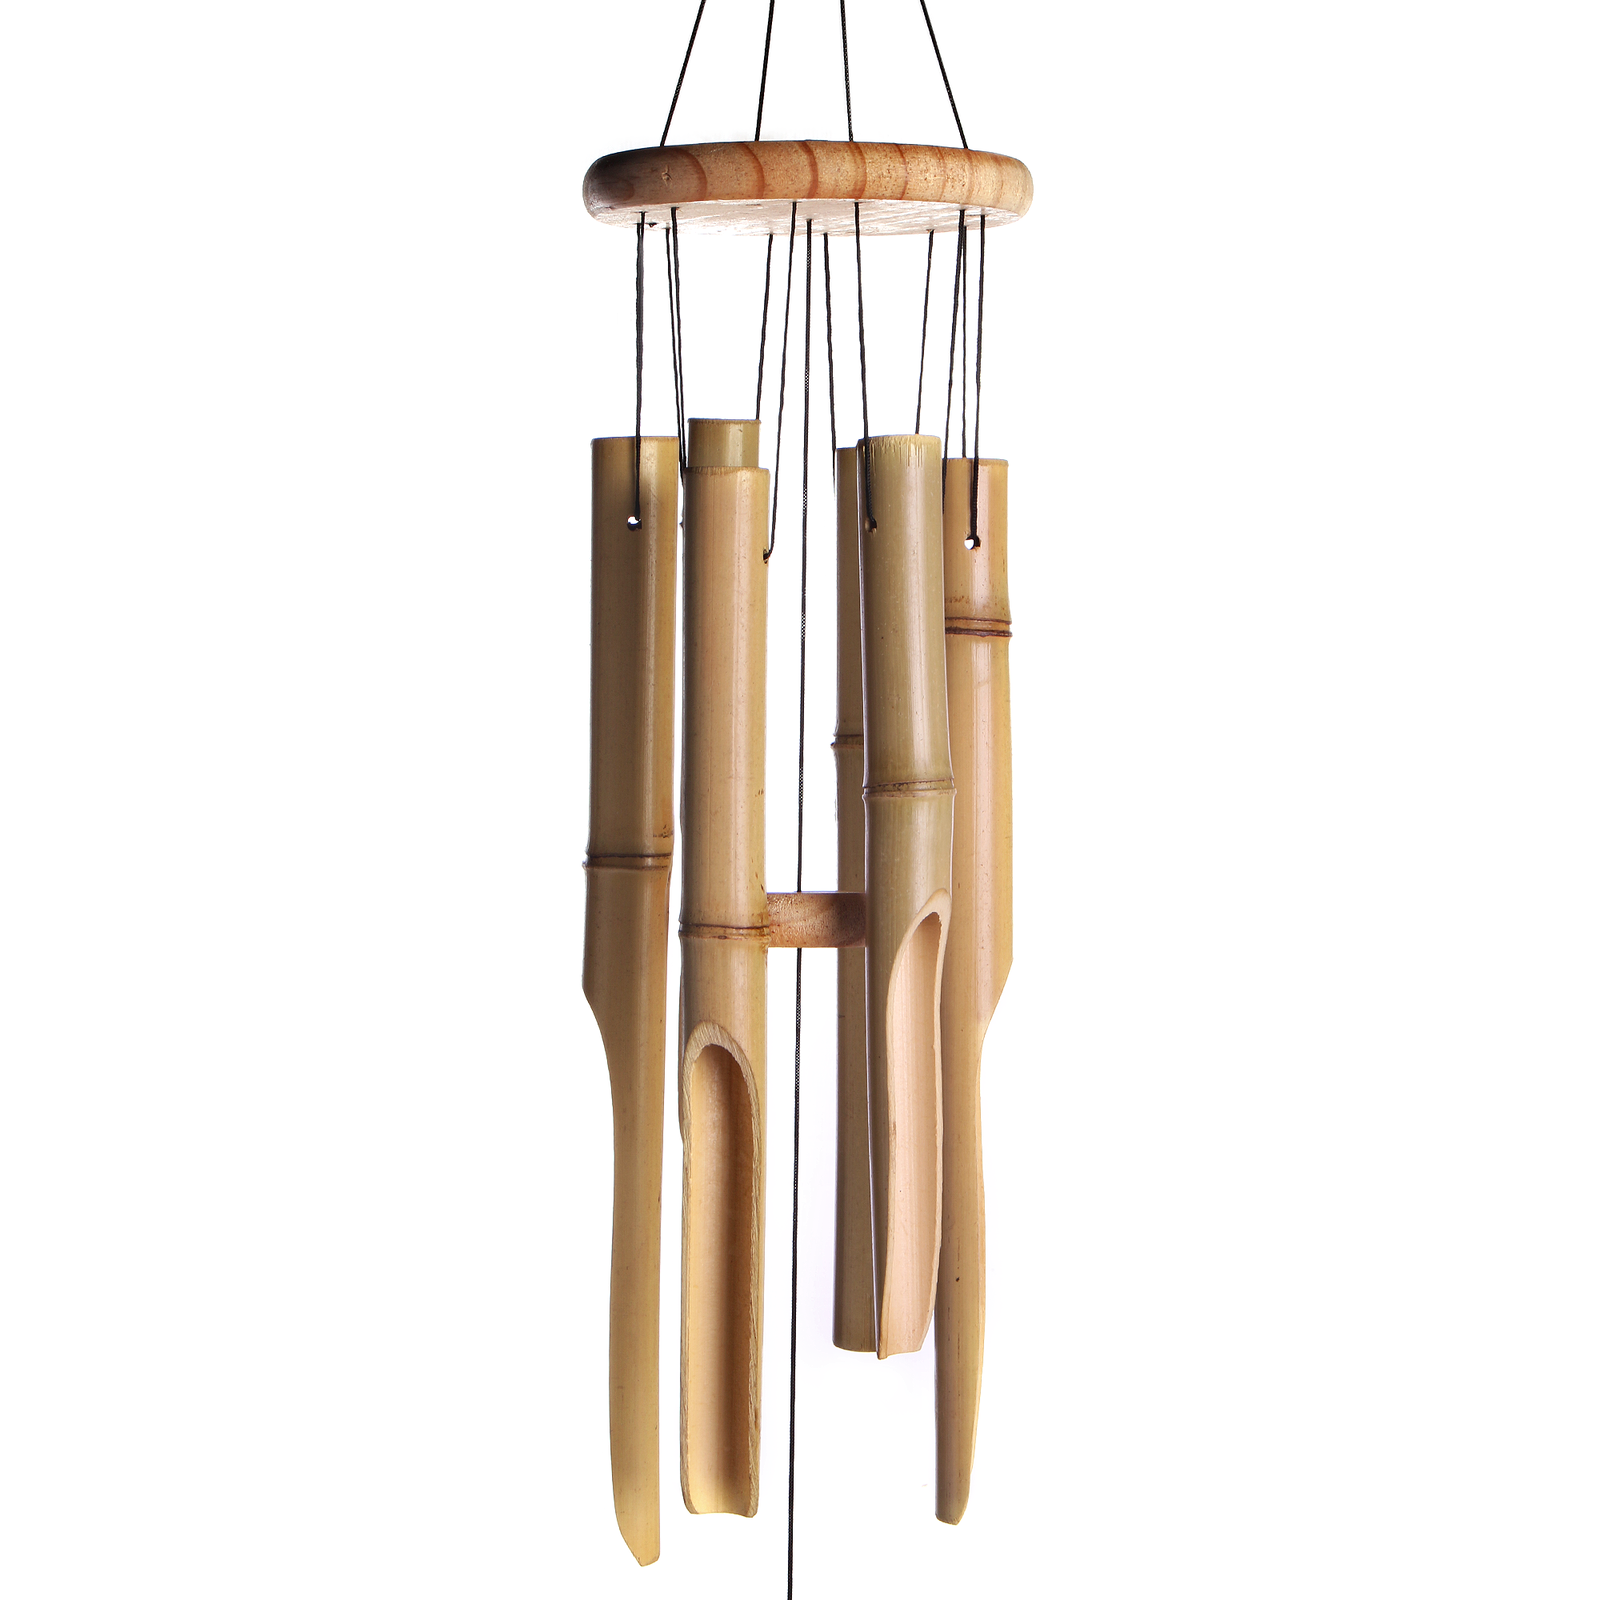 Bamboo Wind Chimes Wooden Chimes Hanging Garden Decoration   M&W